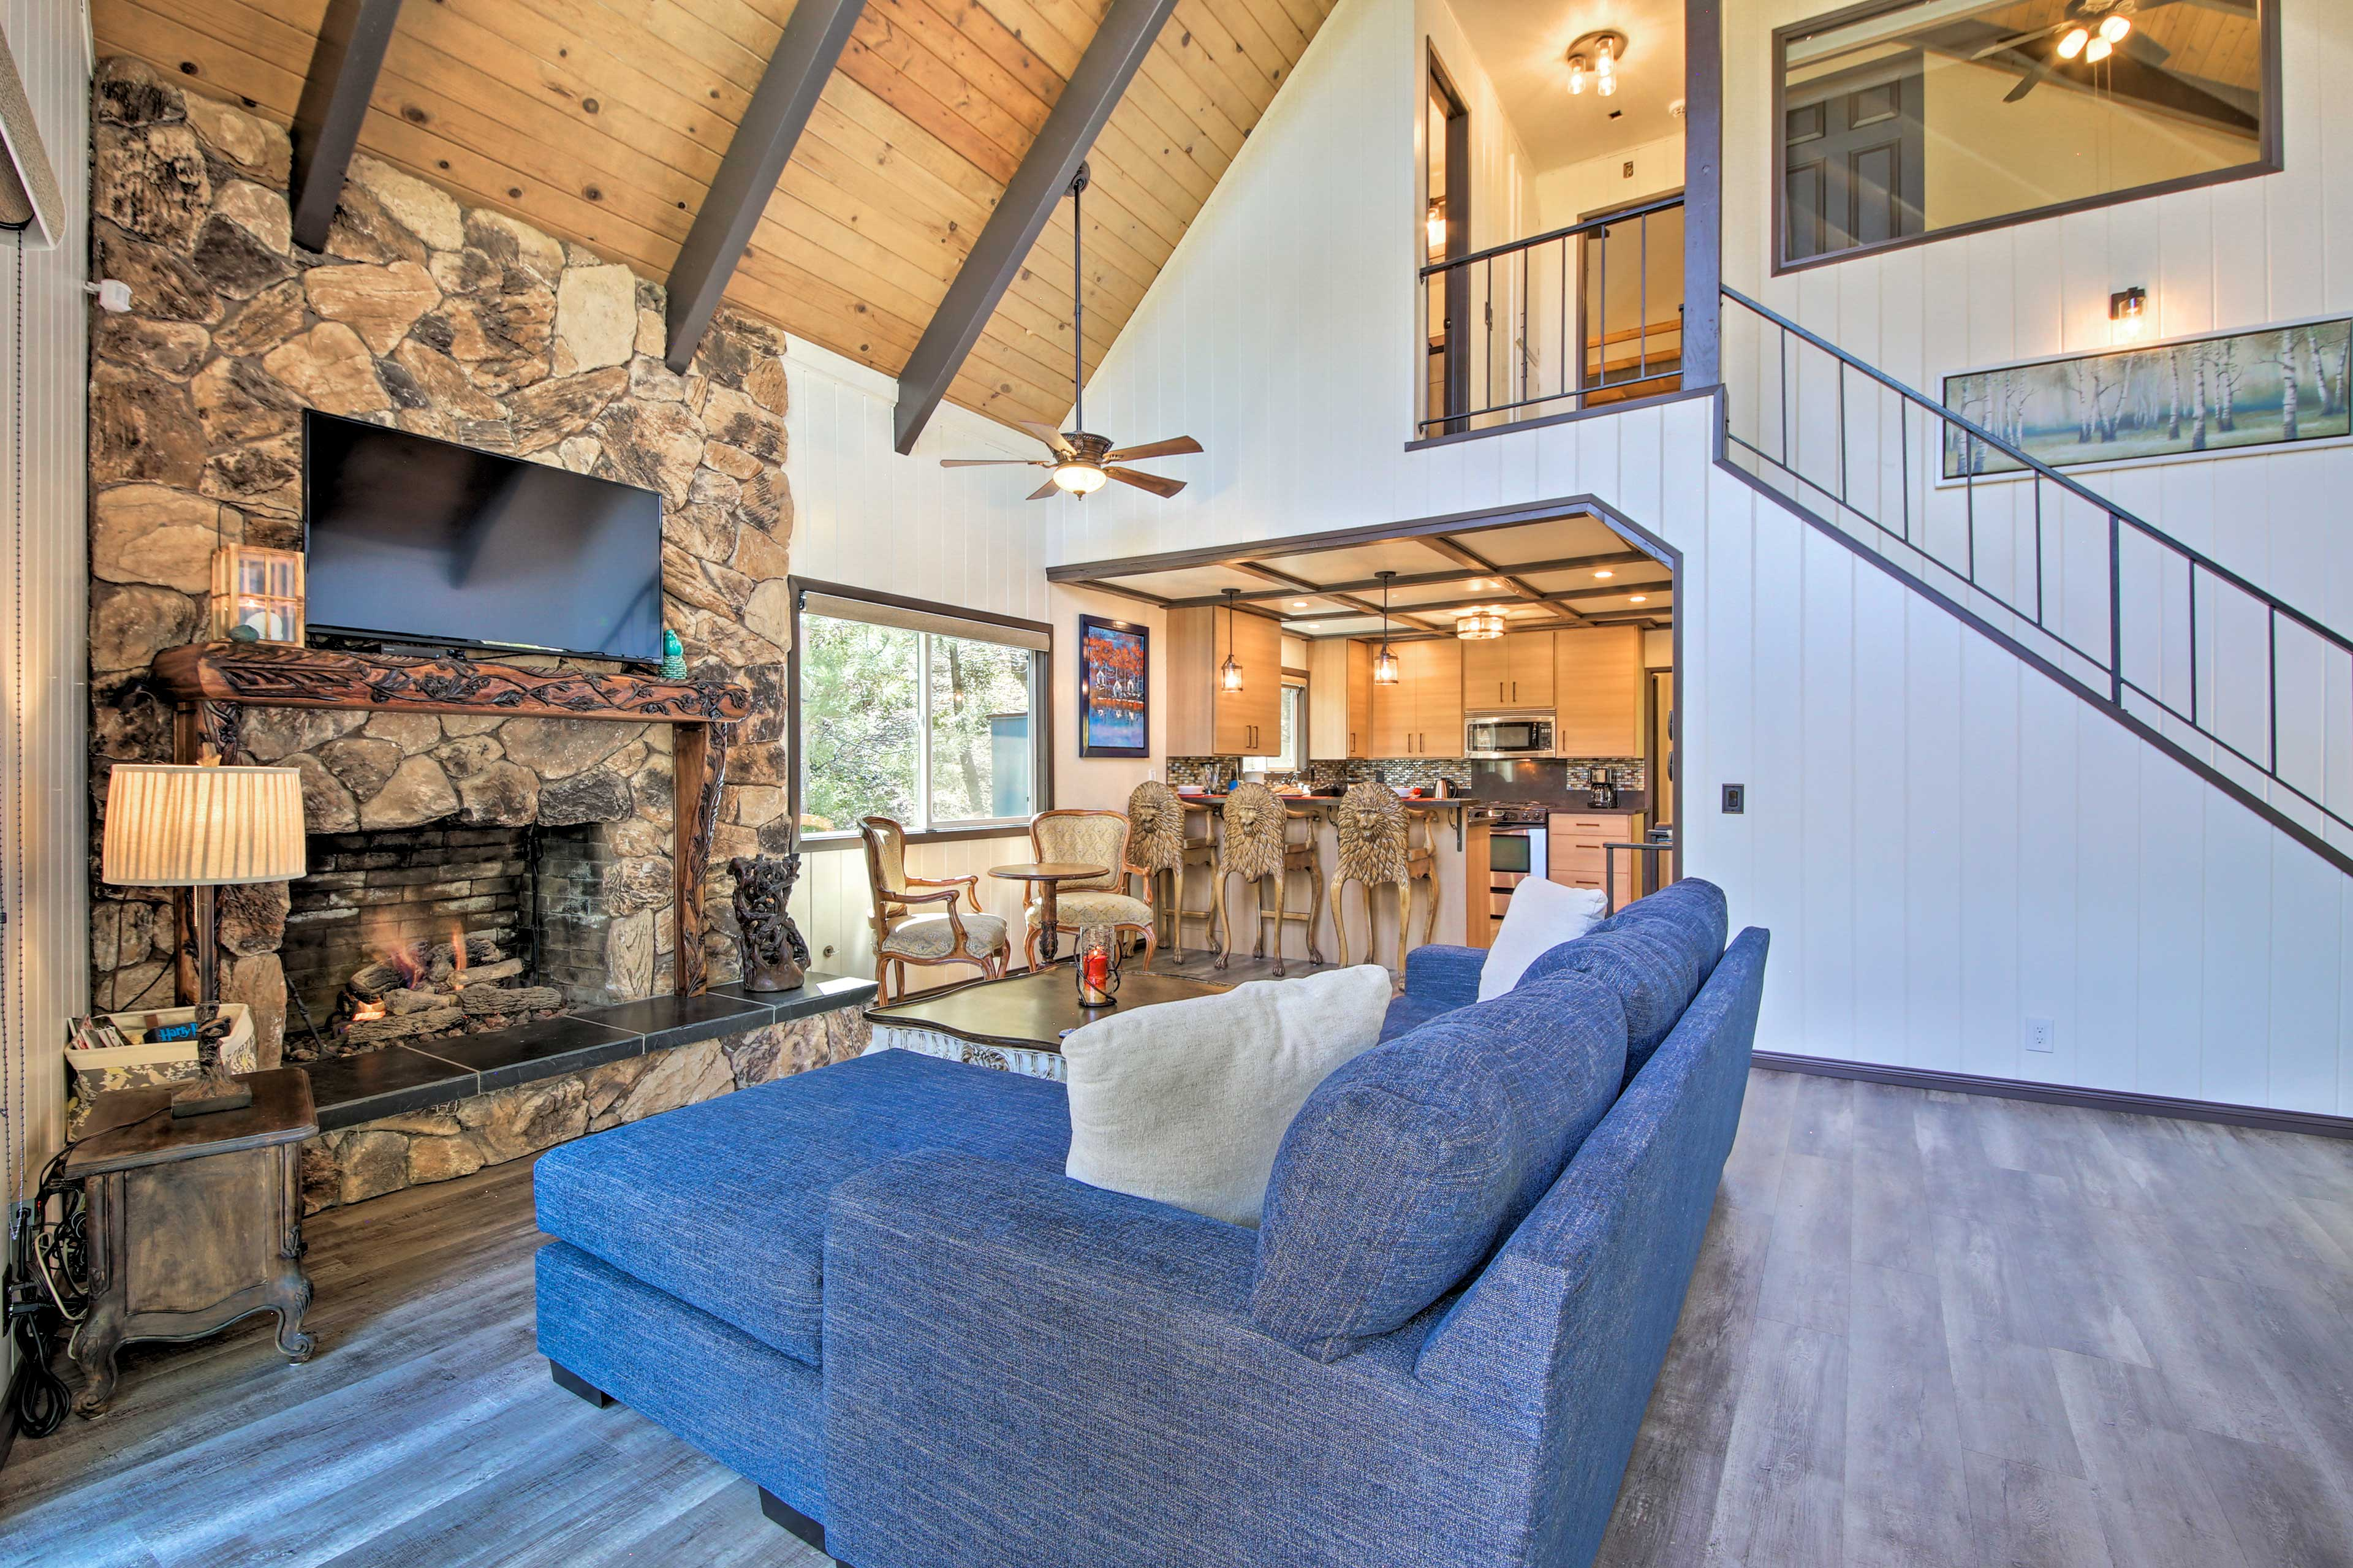 Warm your toes by the fire while admiring the home's rustic-yet-modern charm.